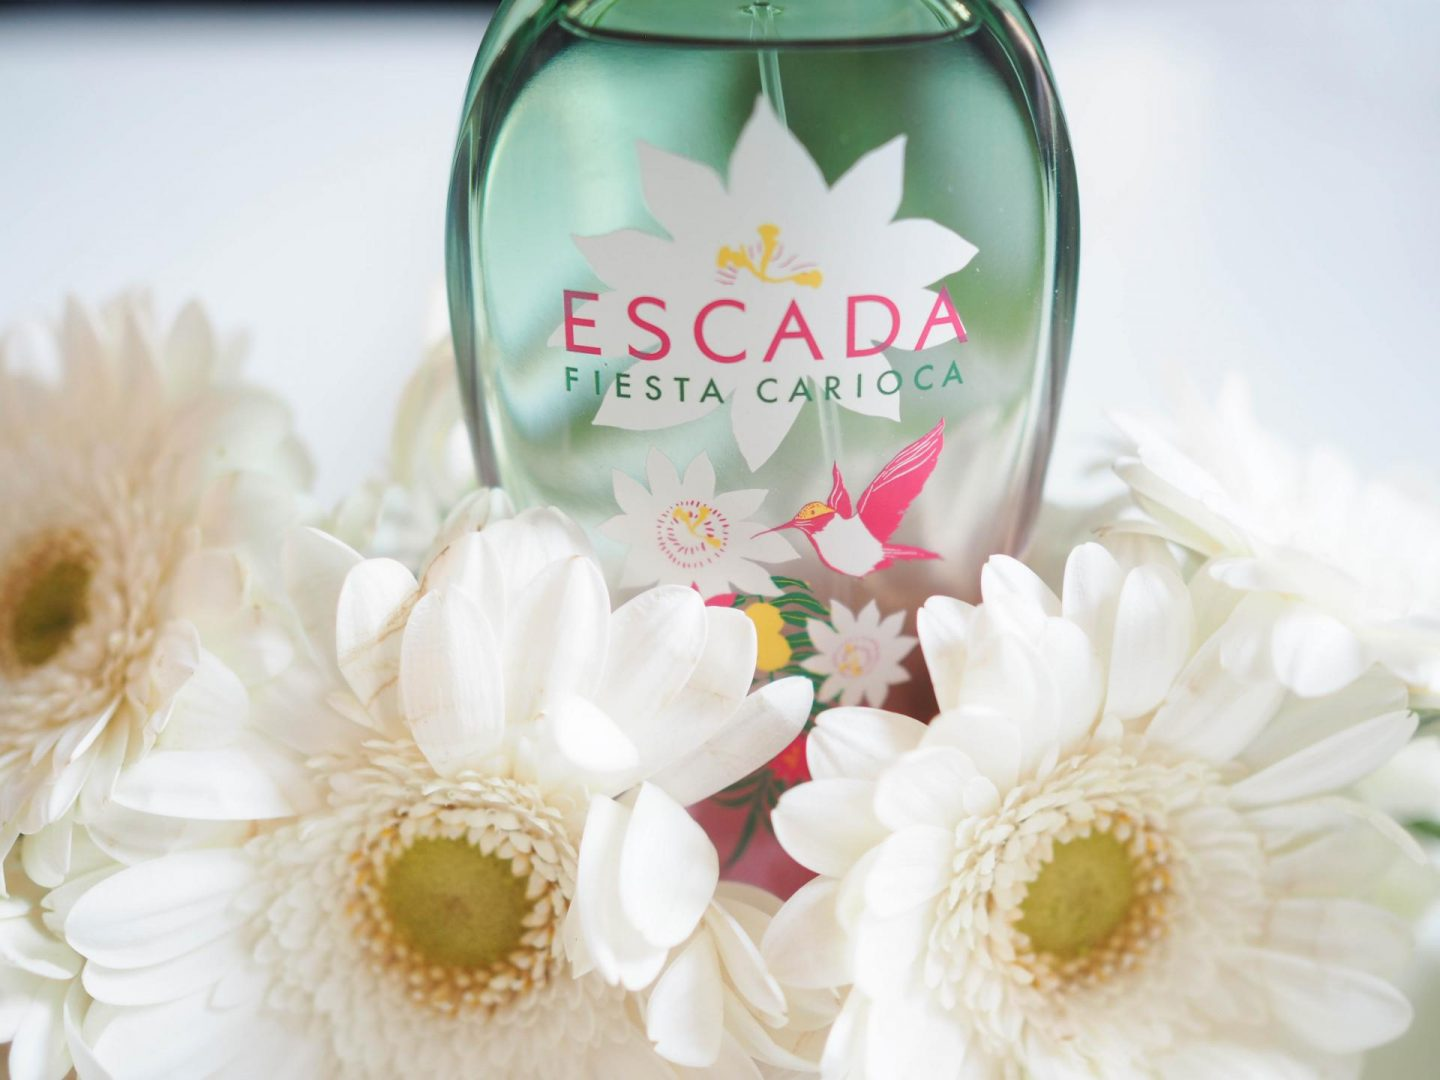 Floral and fruity nuts with the new Escada Fiesta Carioca and feel the summer vibes, ARIBA!